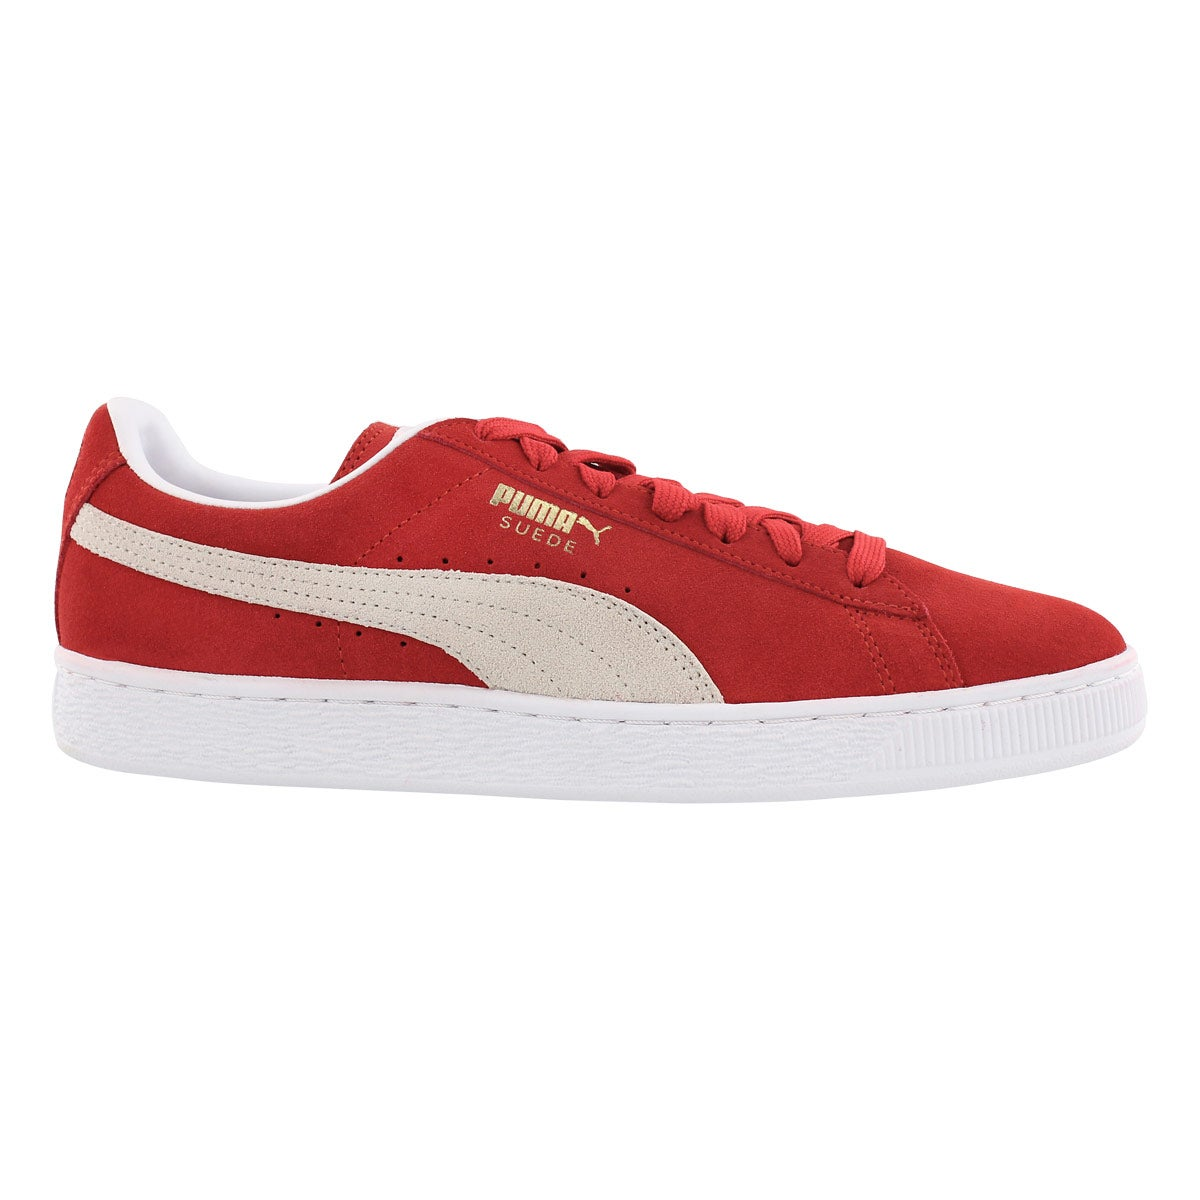 Mns Suede Classic + red/wht sneaker